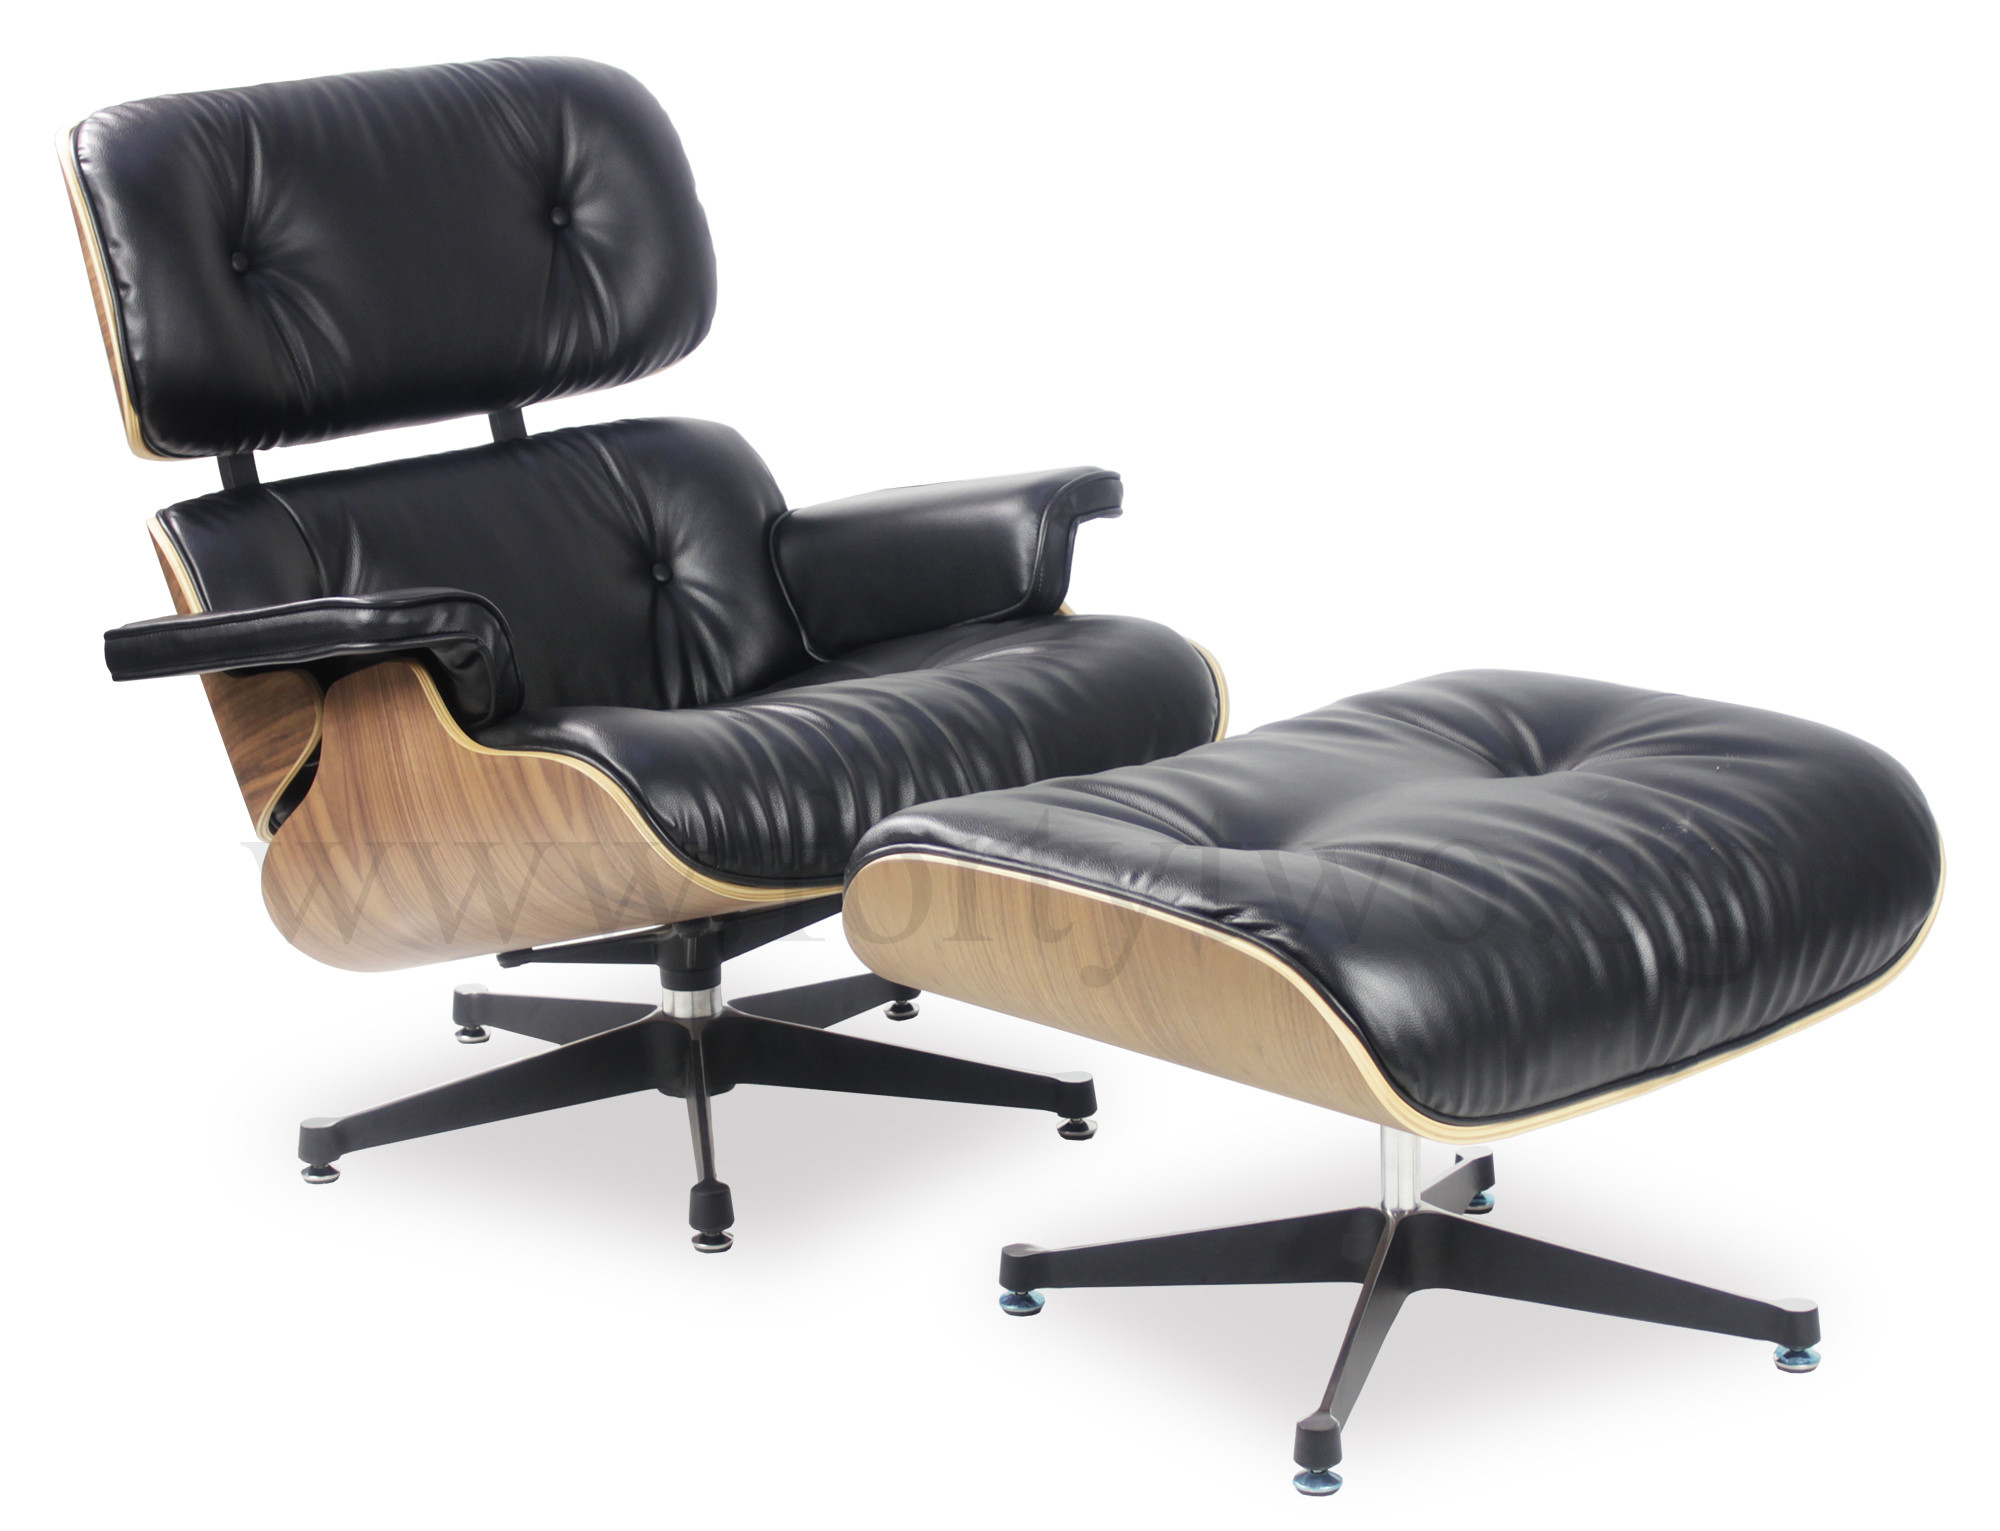 Designer replica eames lounge chair black furniture for Eames chair replica schweiz